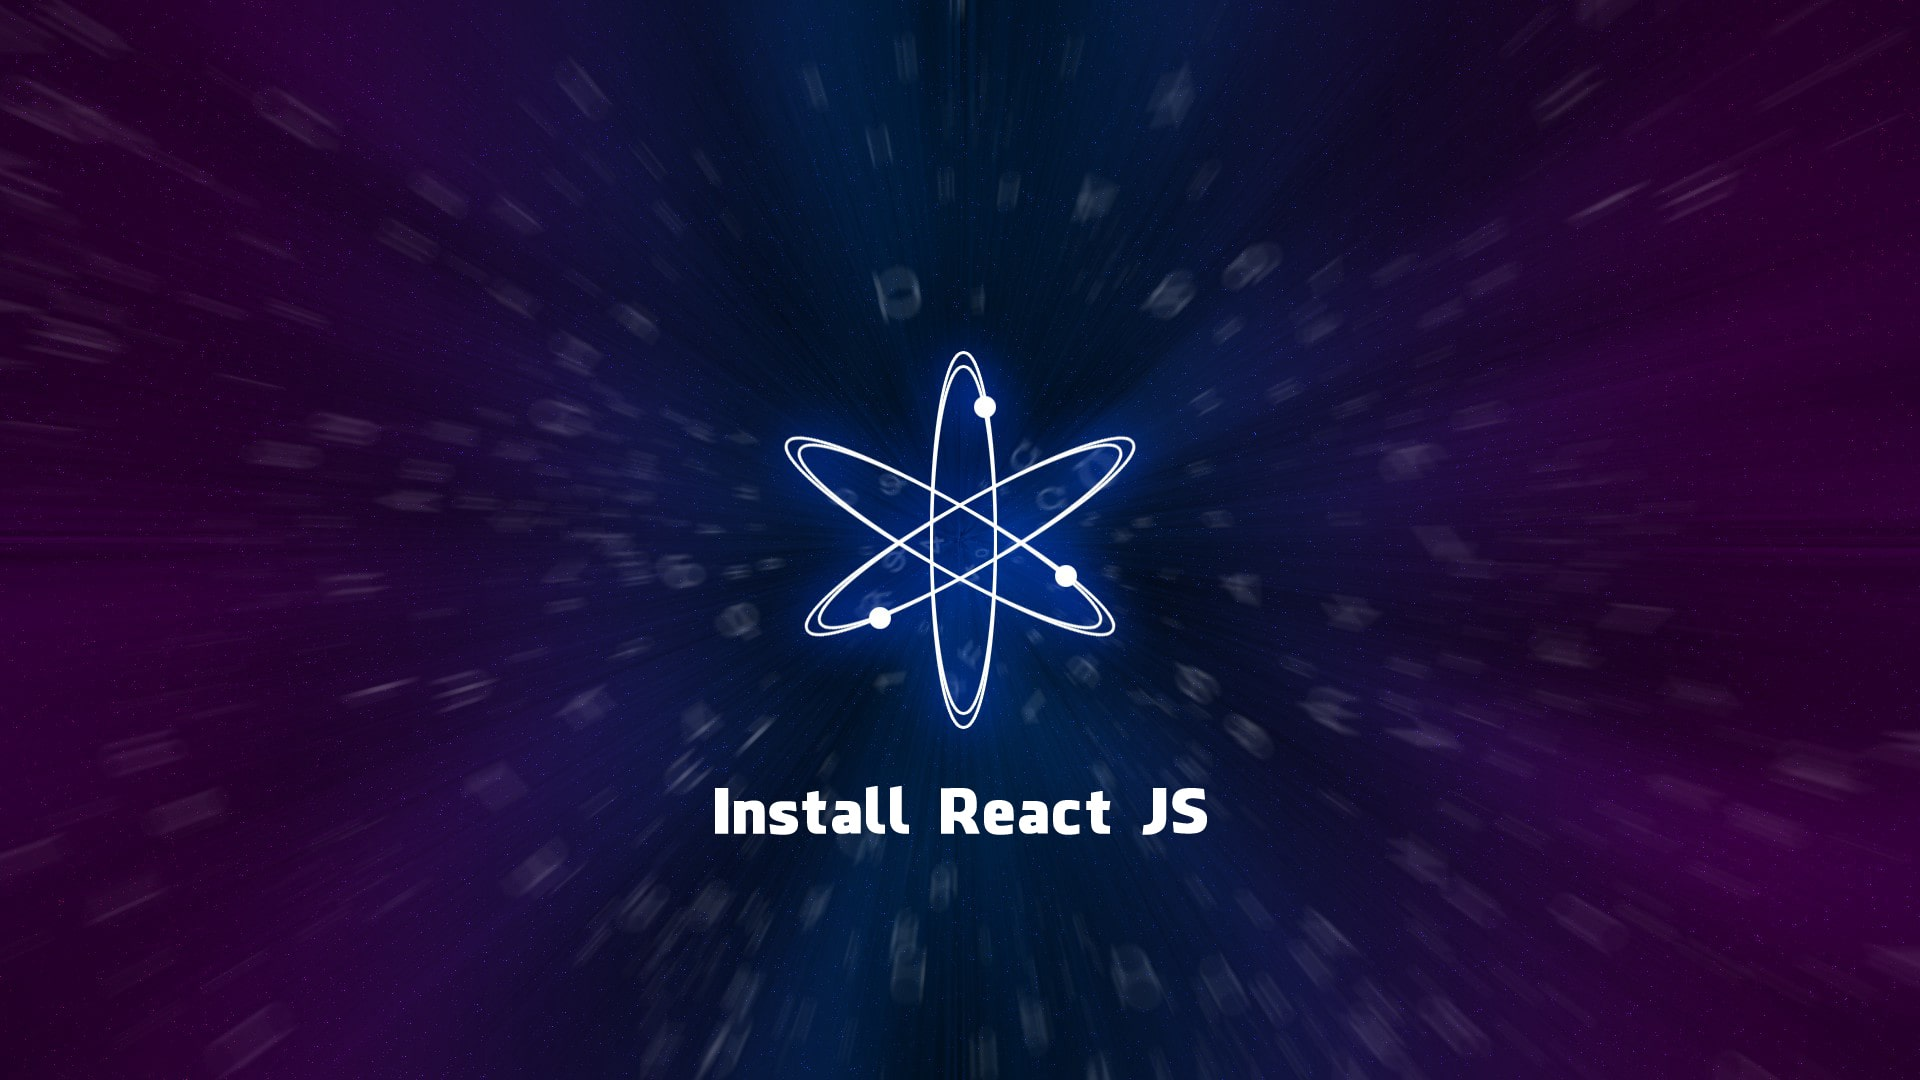 The best way to install React JS